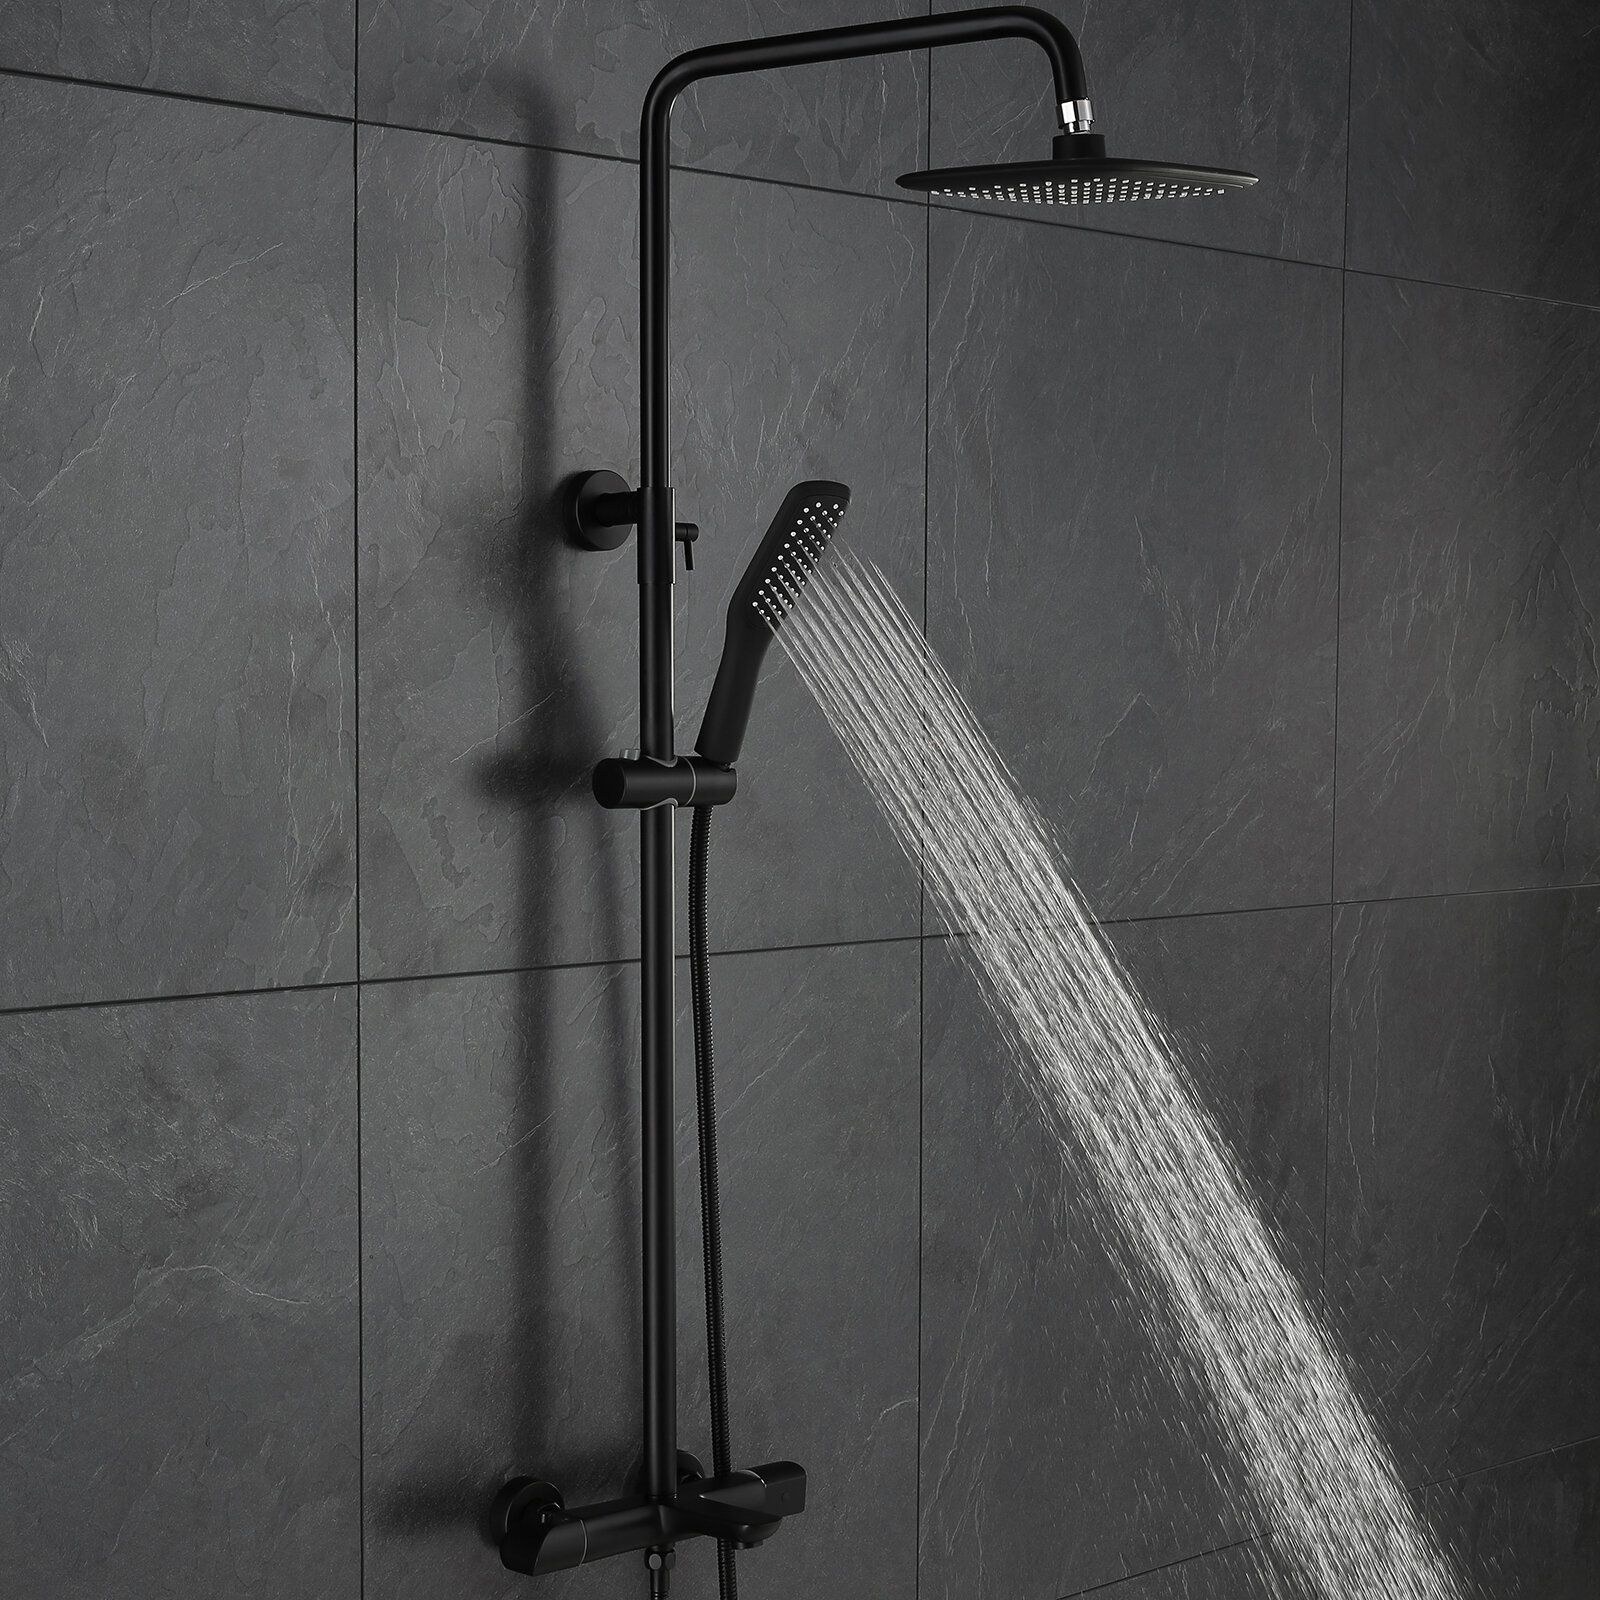 Matte Black Shower System Thermostatic Wall Mounted Exposed Shower Combo  Set Multifunction Shower Faucet Set With Shower Head, Handheld Shower, ...